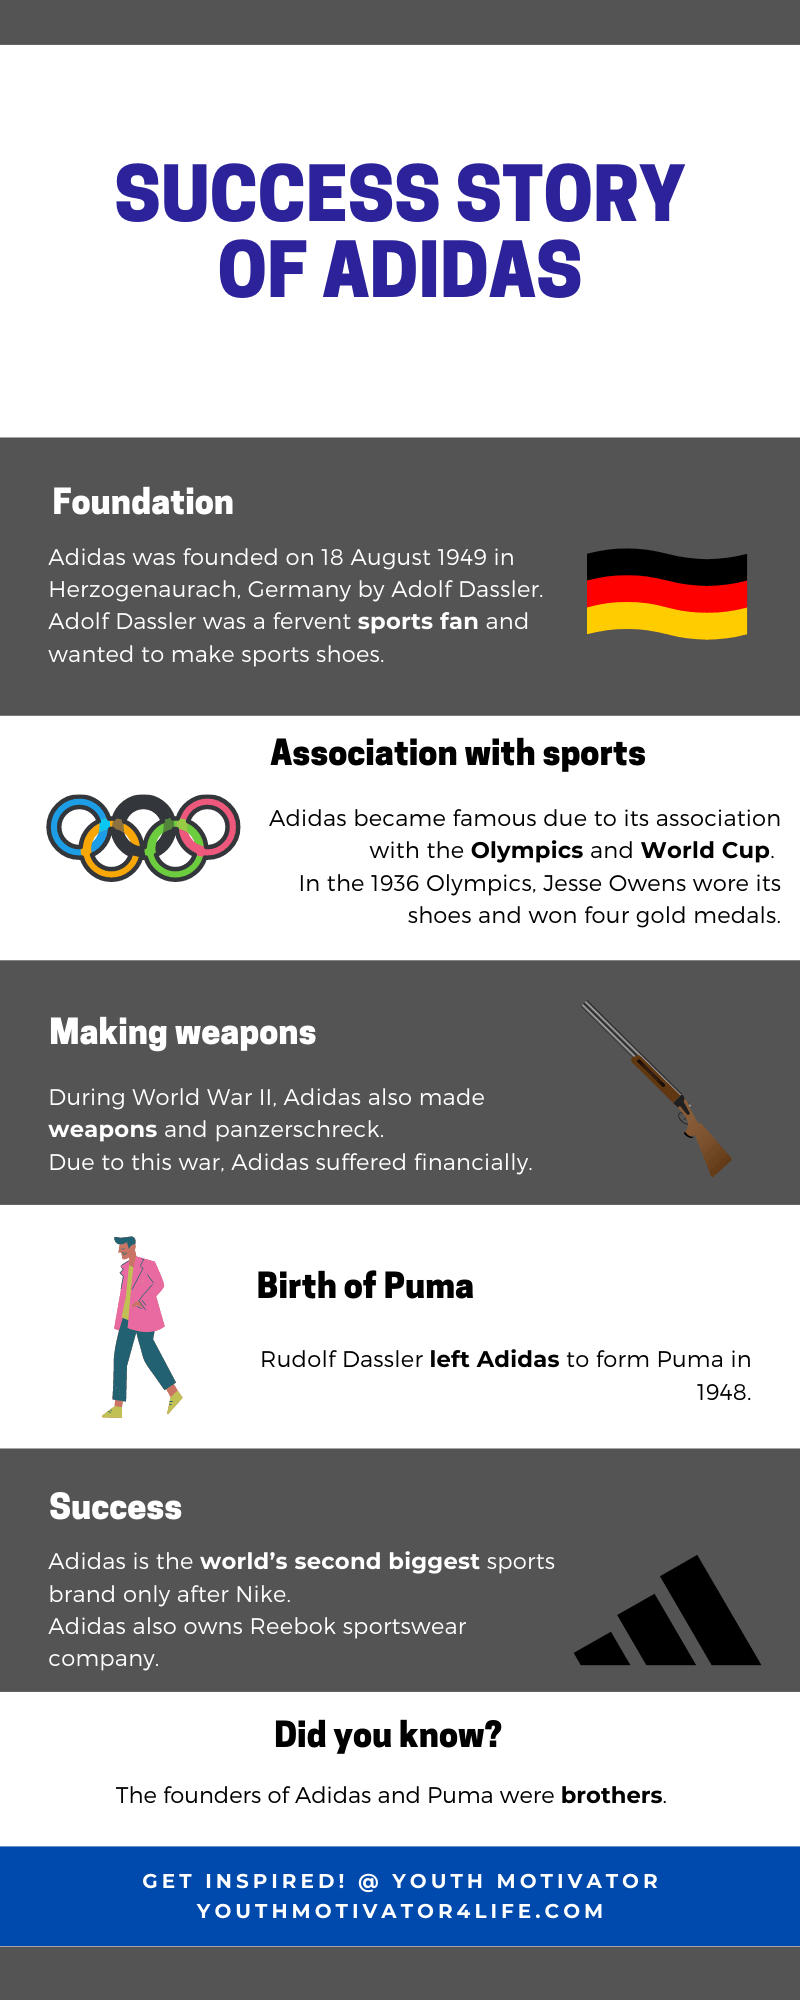 An infographic on success story of Adidas